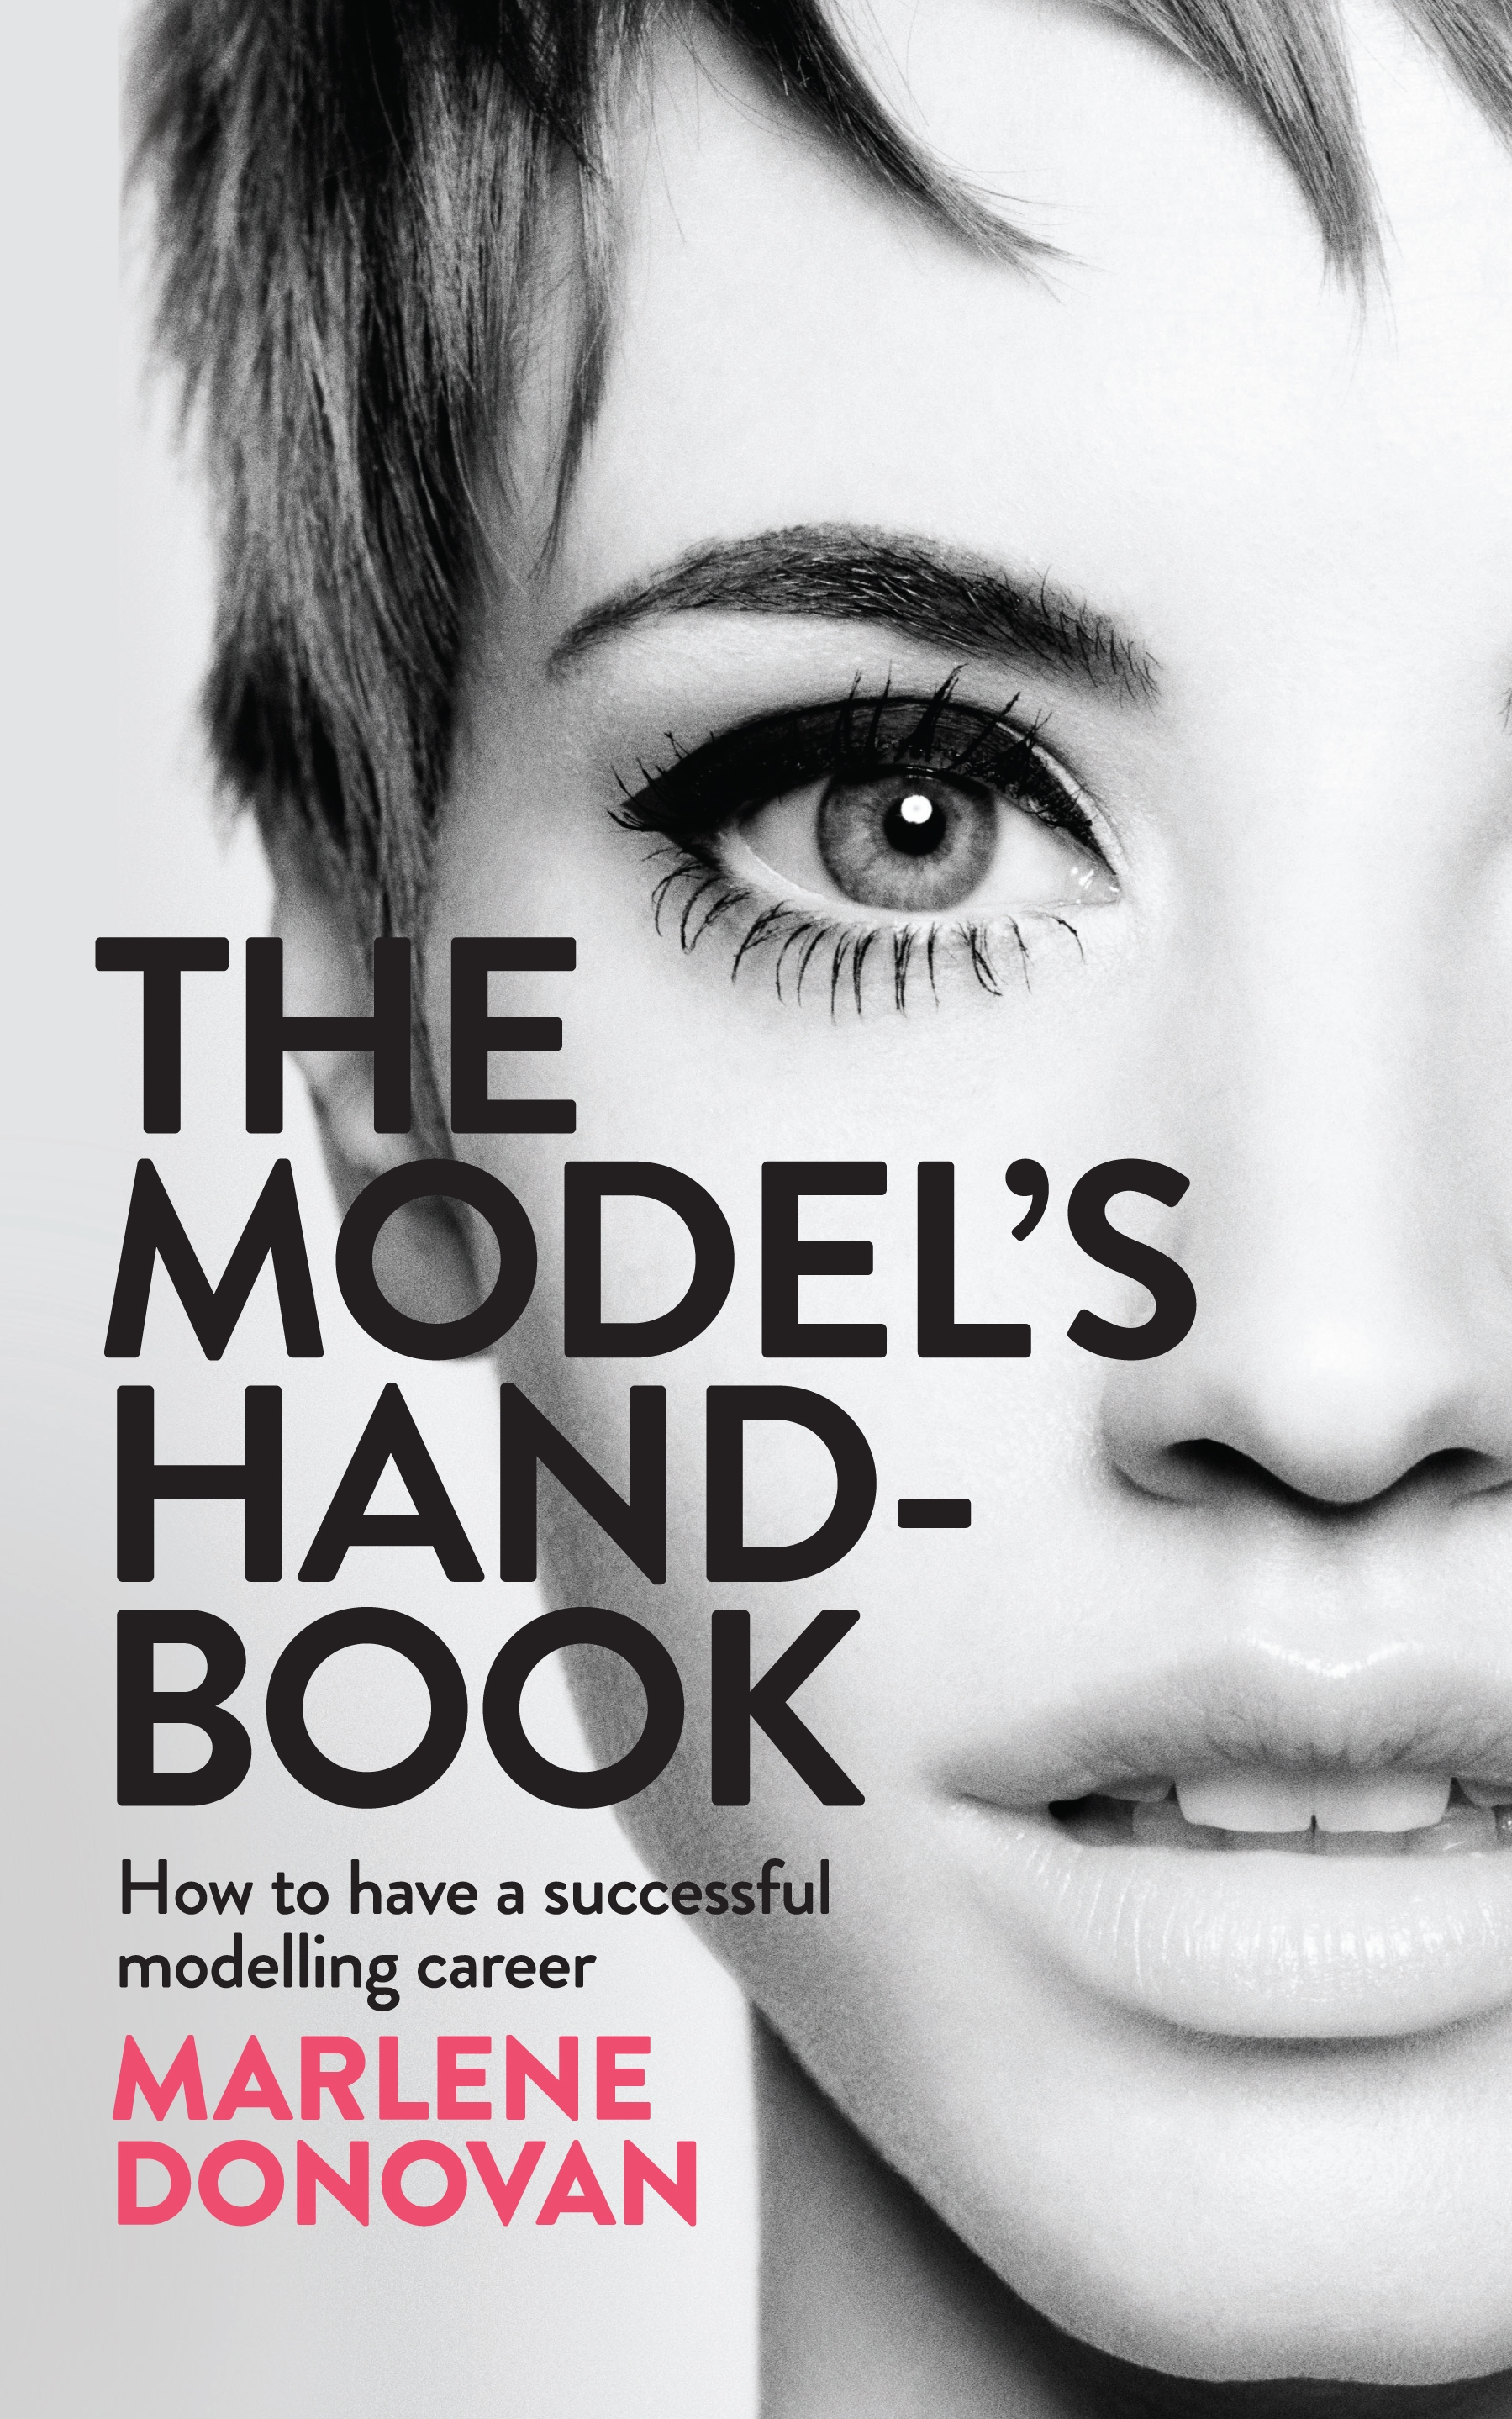 Book Cover: The Model's Handbook